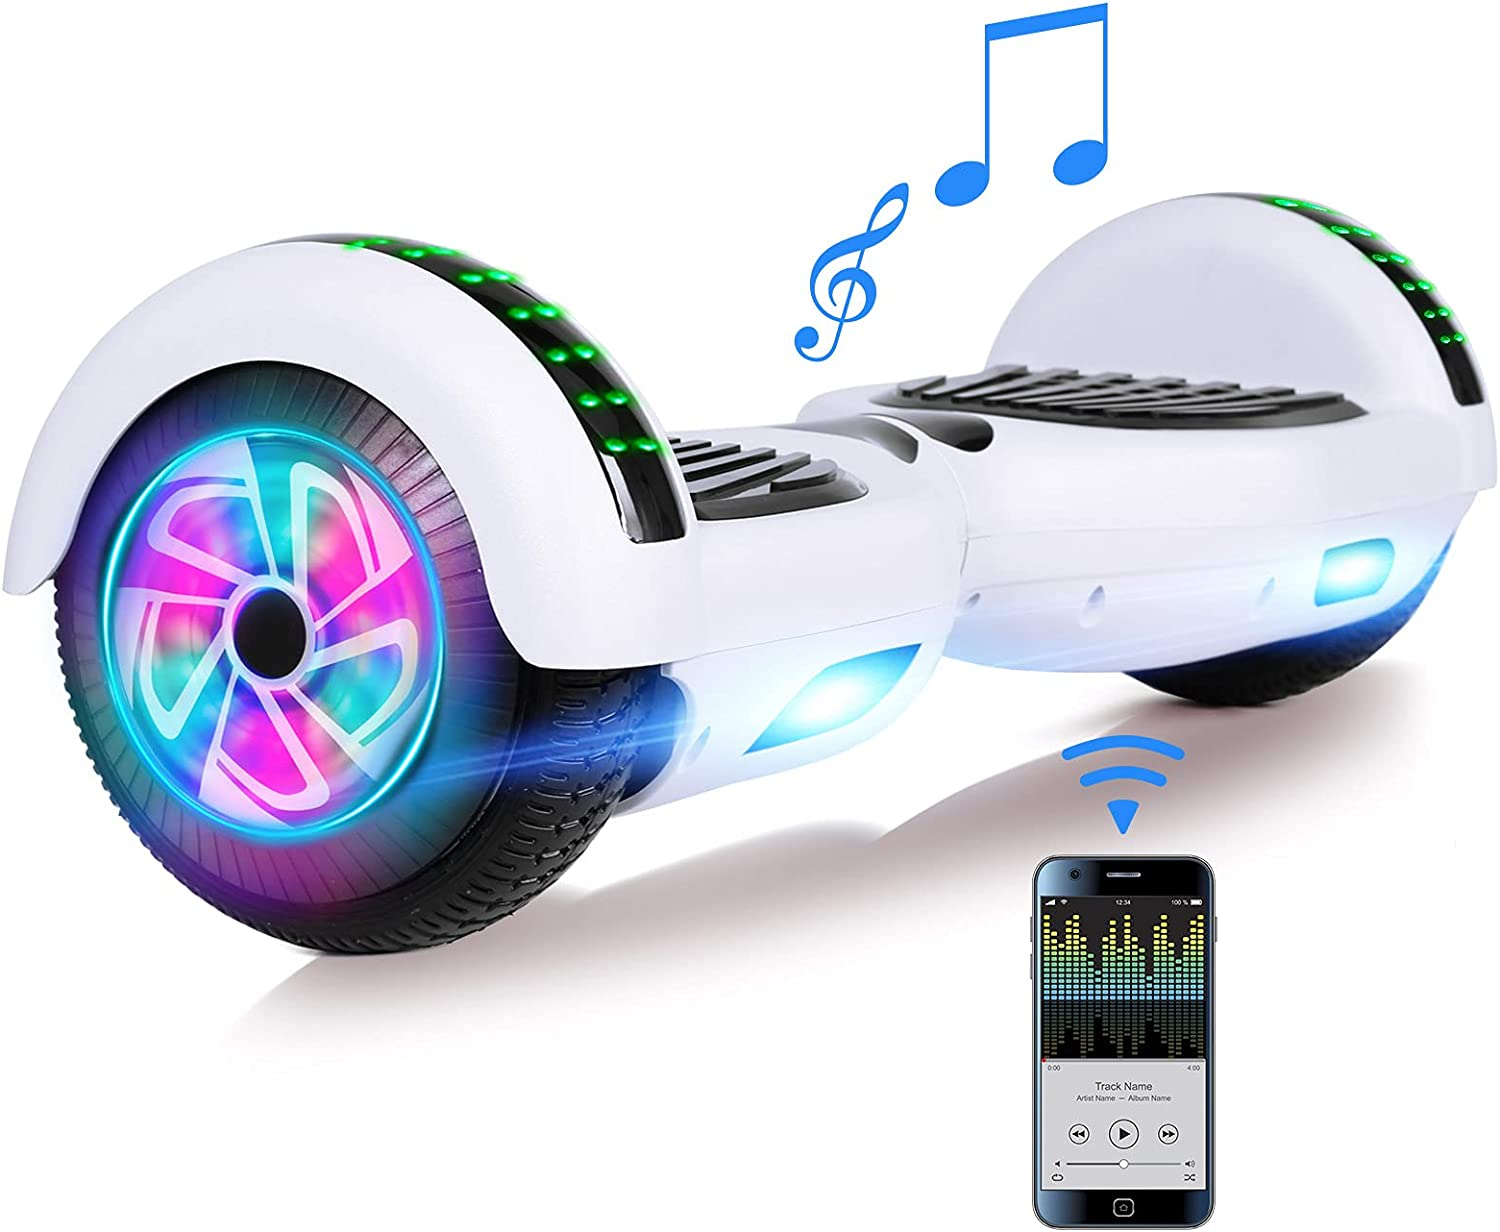 FLYING-ANT Hoverboard Hoverboards for Kids Speak 希望者のみラッピング無料 with 激安超特価 Bluetooth